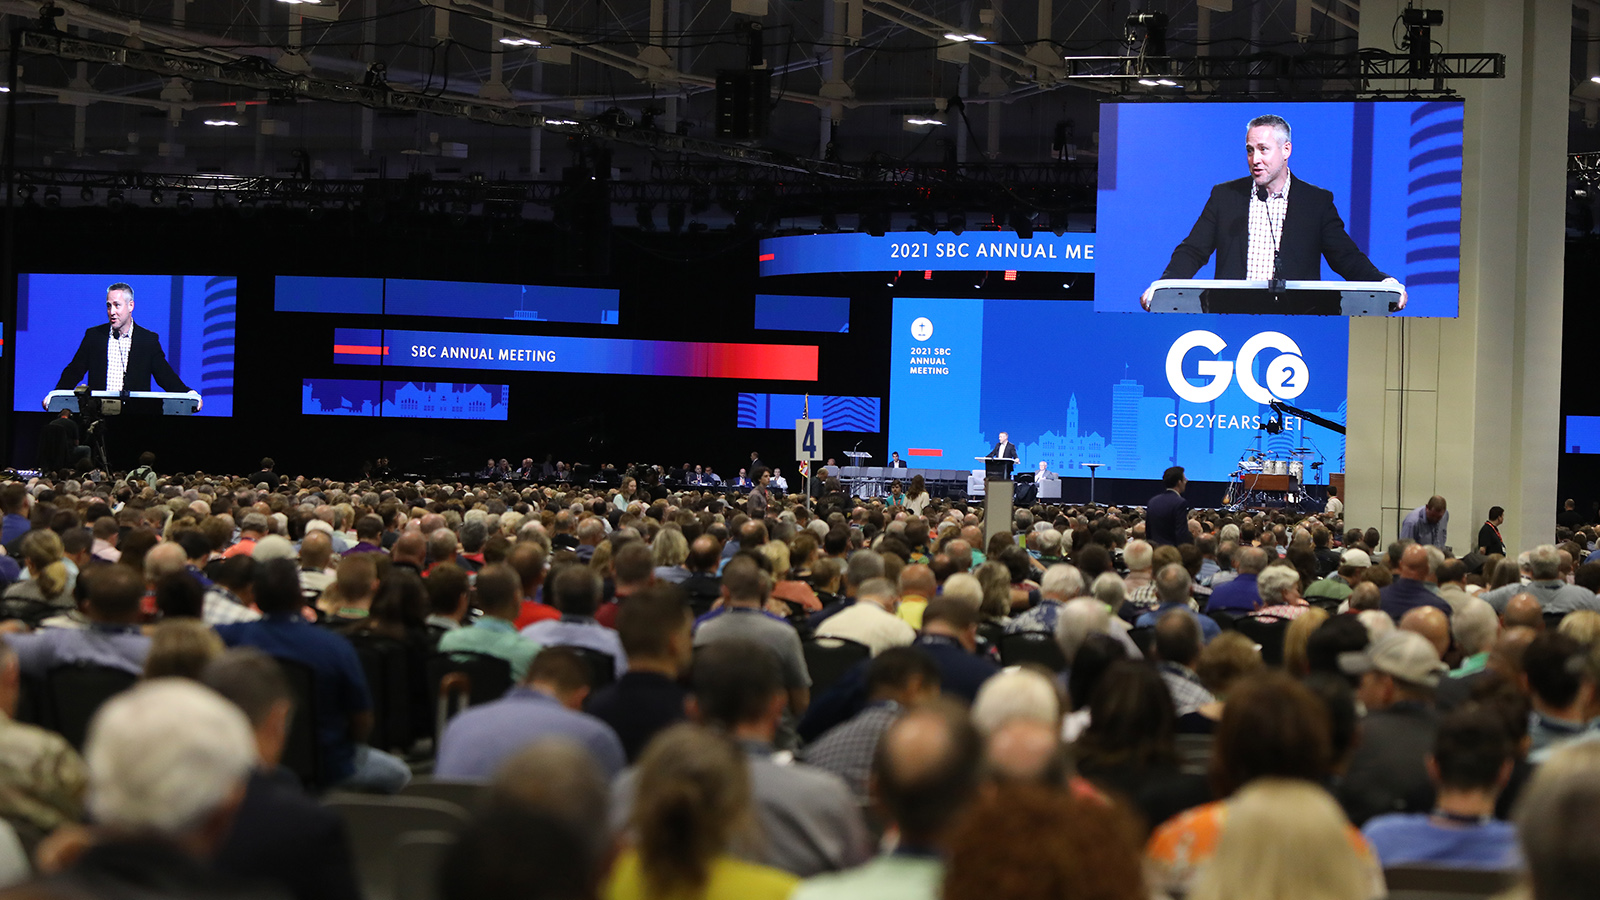 Southern Baptist Convention President J.D. Greear is projected on screens around the Music City Center while addressing the annual meeting, Wednesday, June 16, 2021, in Nashville. RNS photo by Kit Doyle